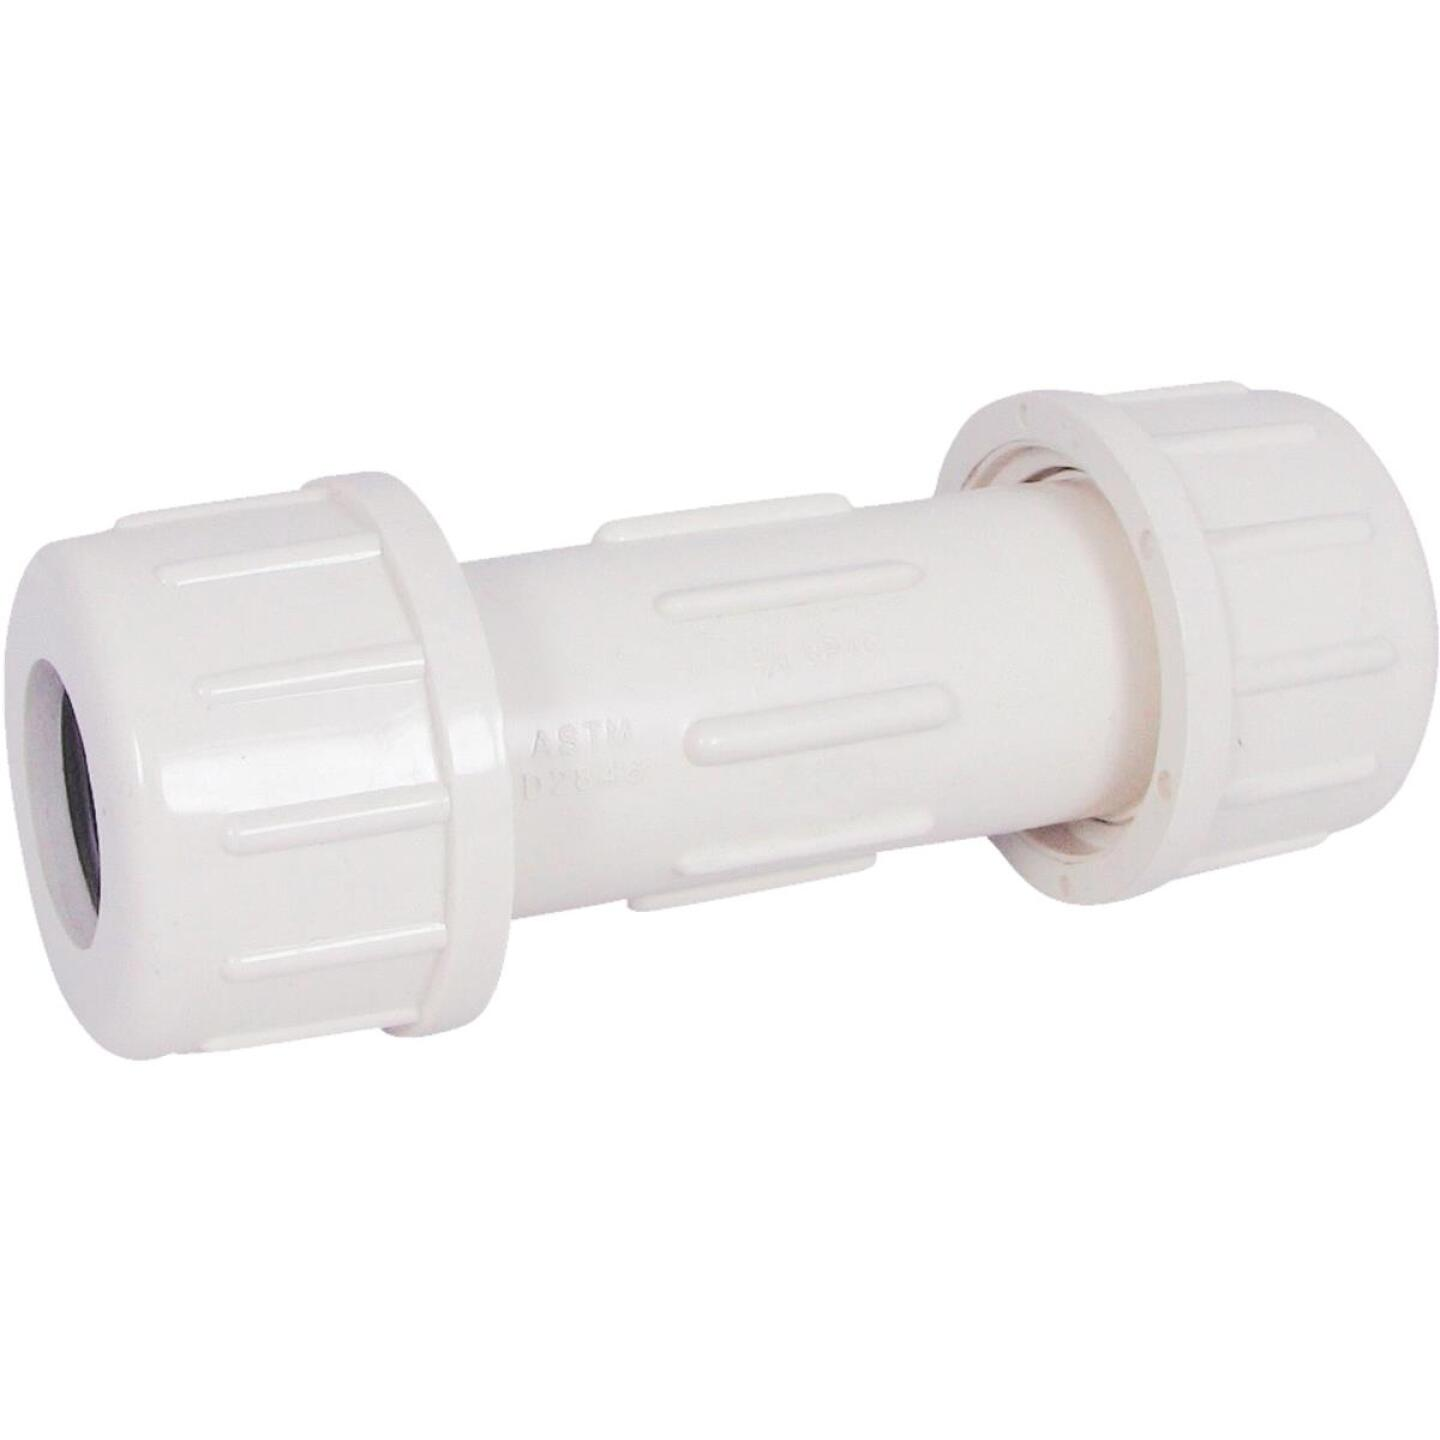 B&K 5/8 In. OD x 1/2 In. Compression CPVC Coupling Image 1